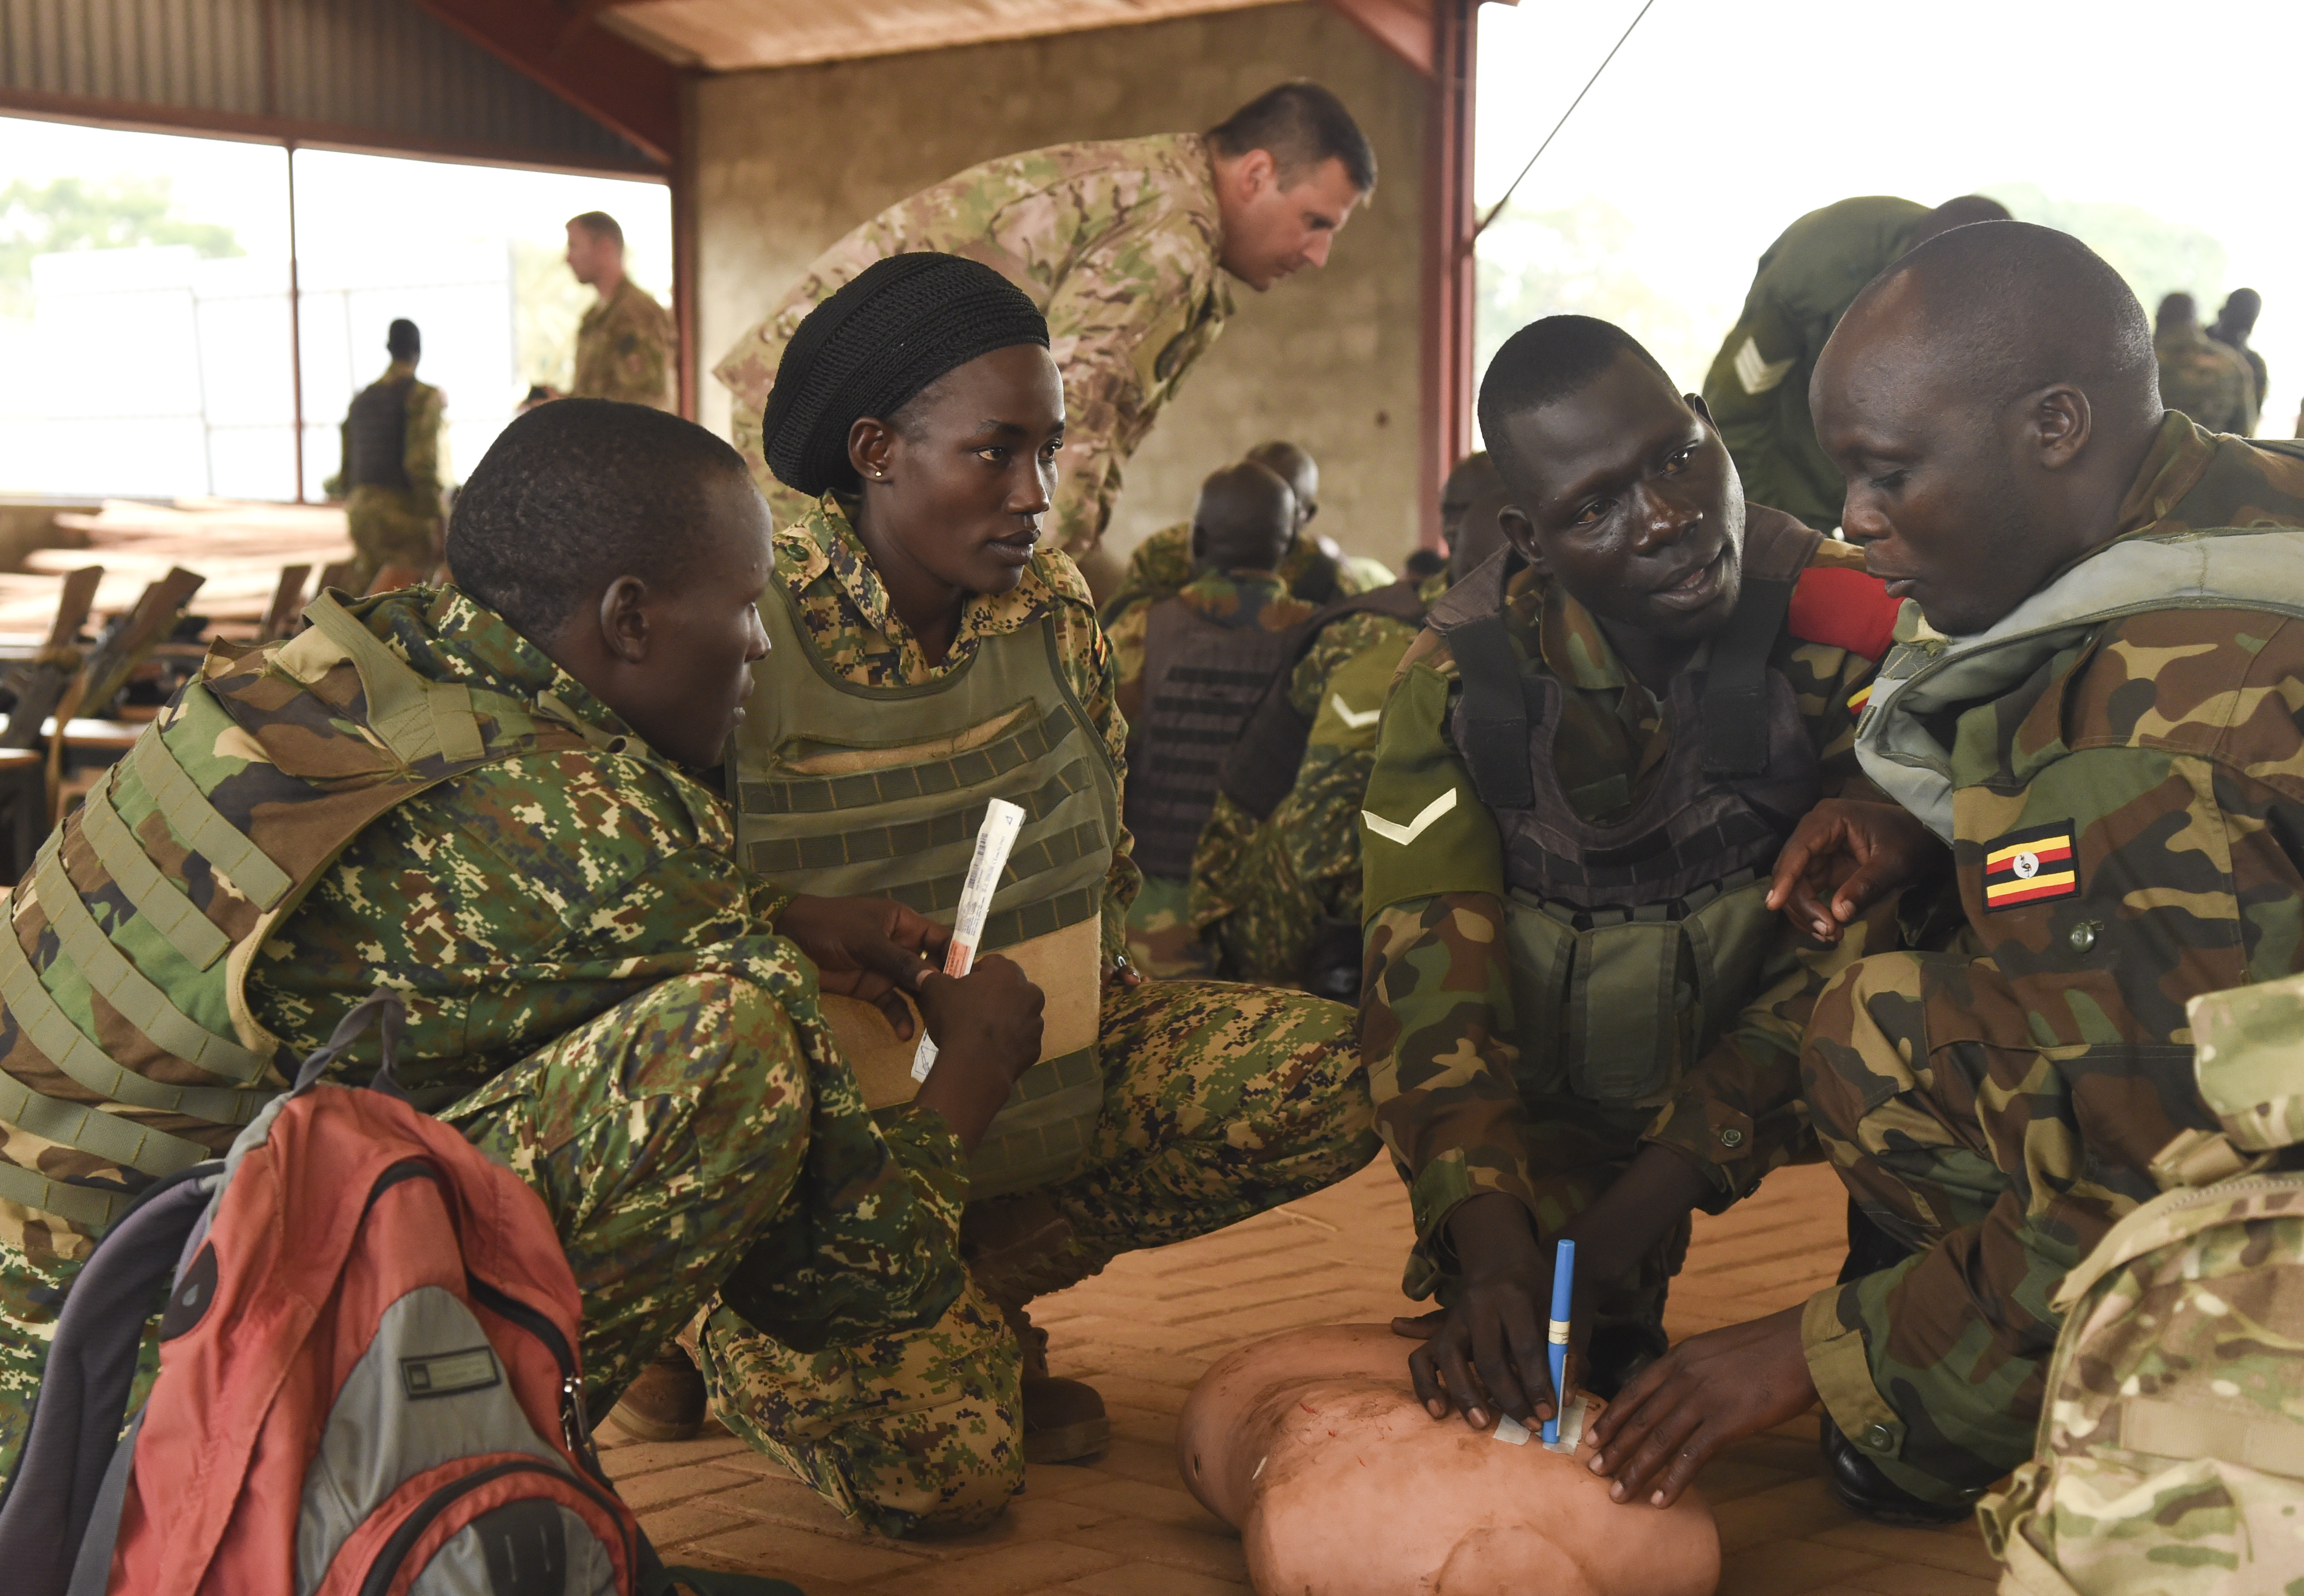 Uganda People's Defense Force (UPDF) soldiers with Ugandan Battle Group 22, insert a needle into the chest of a simulated chest wound casualty to prevent or treat tension pneumothorax while training at Camp Singo, Uganda, Feb. 28, 2017. The UPDF soldiers had three stations to attend during the Combat Lifesaver Course: response to chest trauma, needle-chest decompression, and opening and maintaining an airway. (U.S. Air National Guard photo by Staff Sgt. Penny Snoozy)